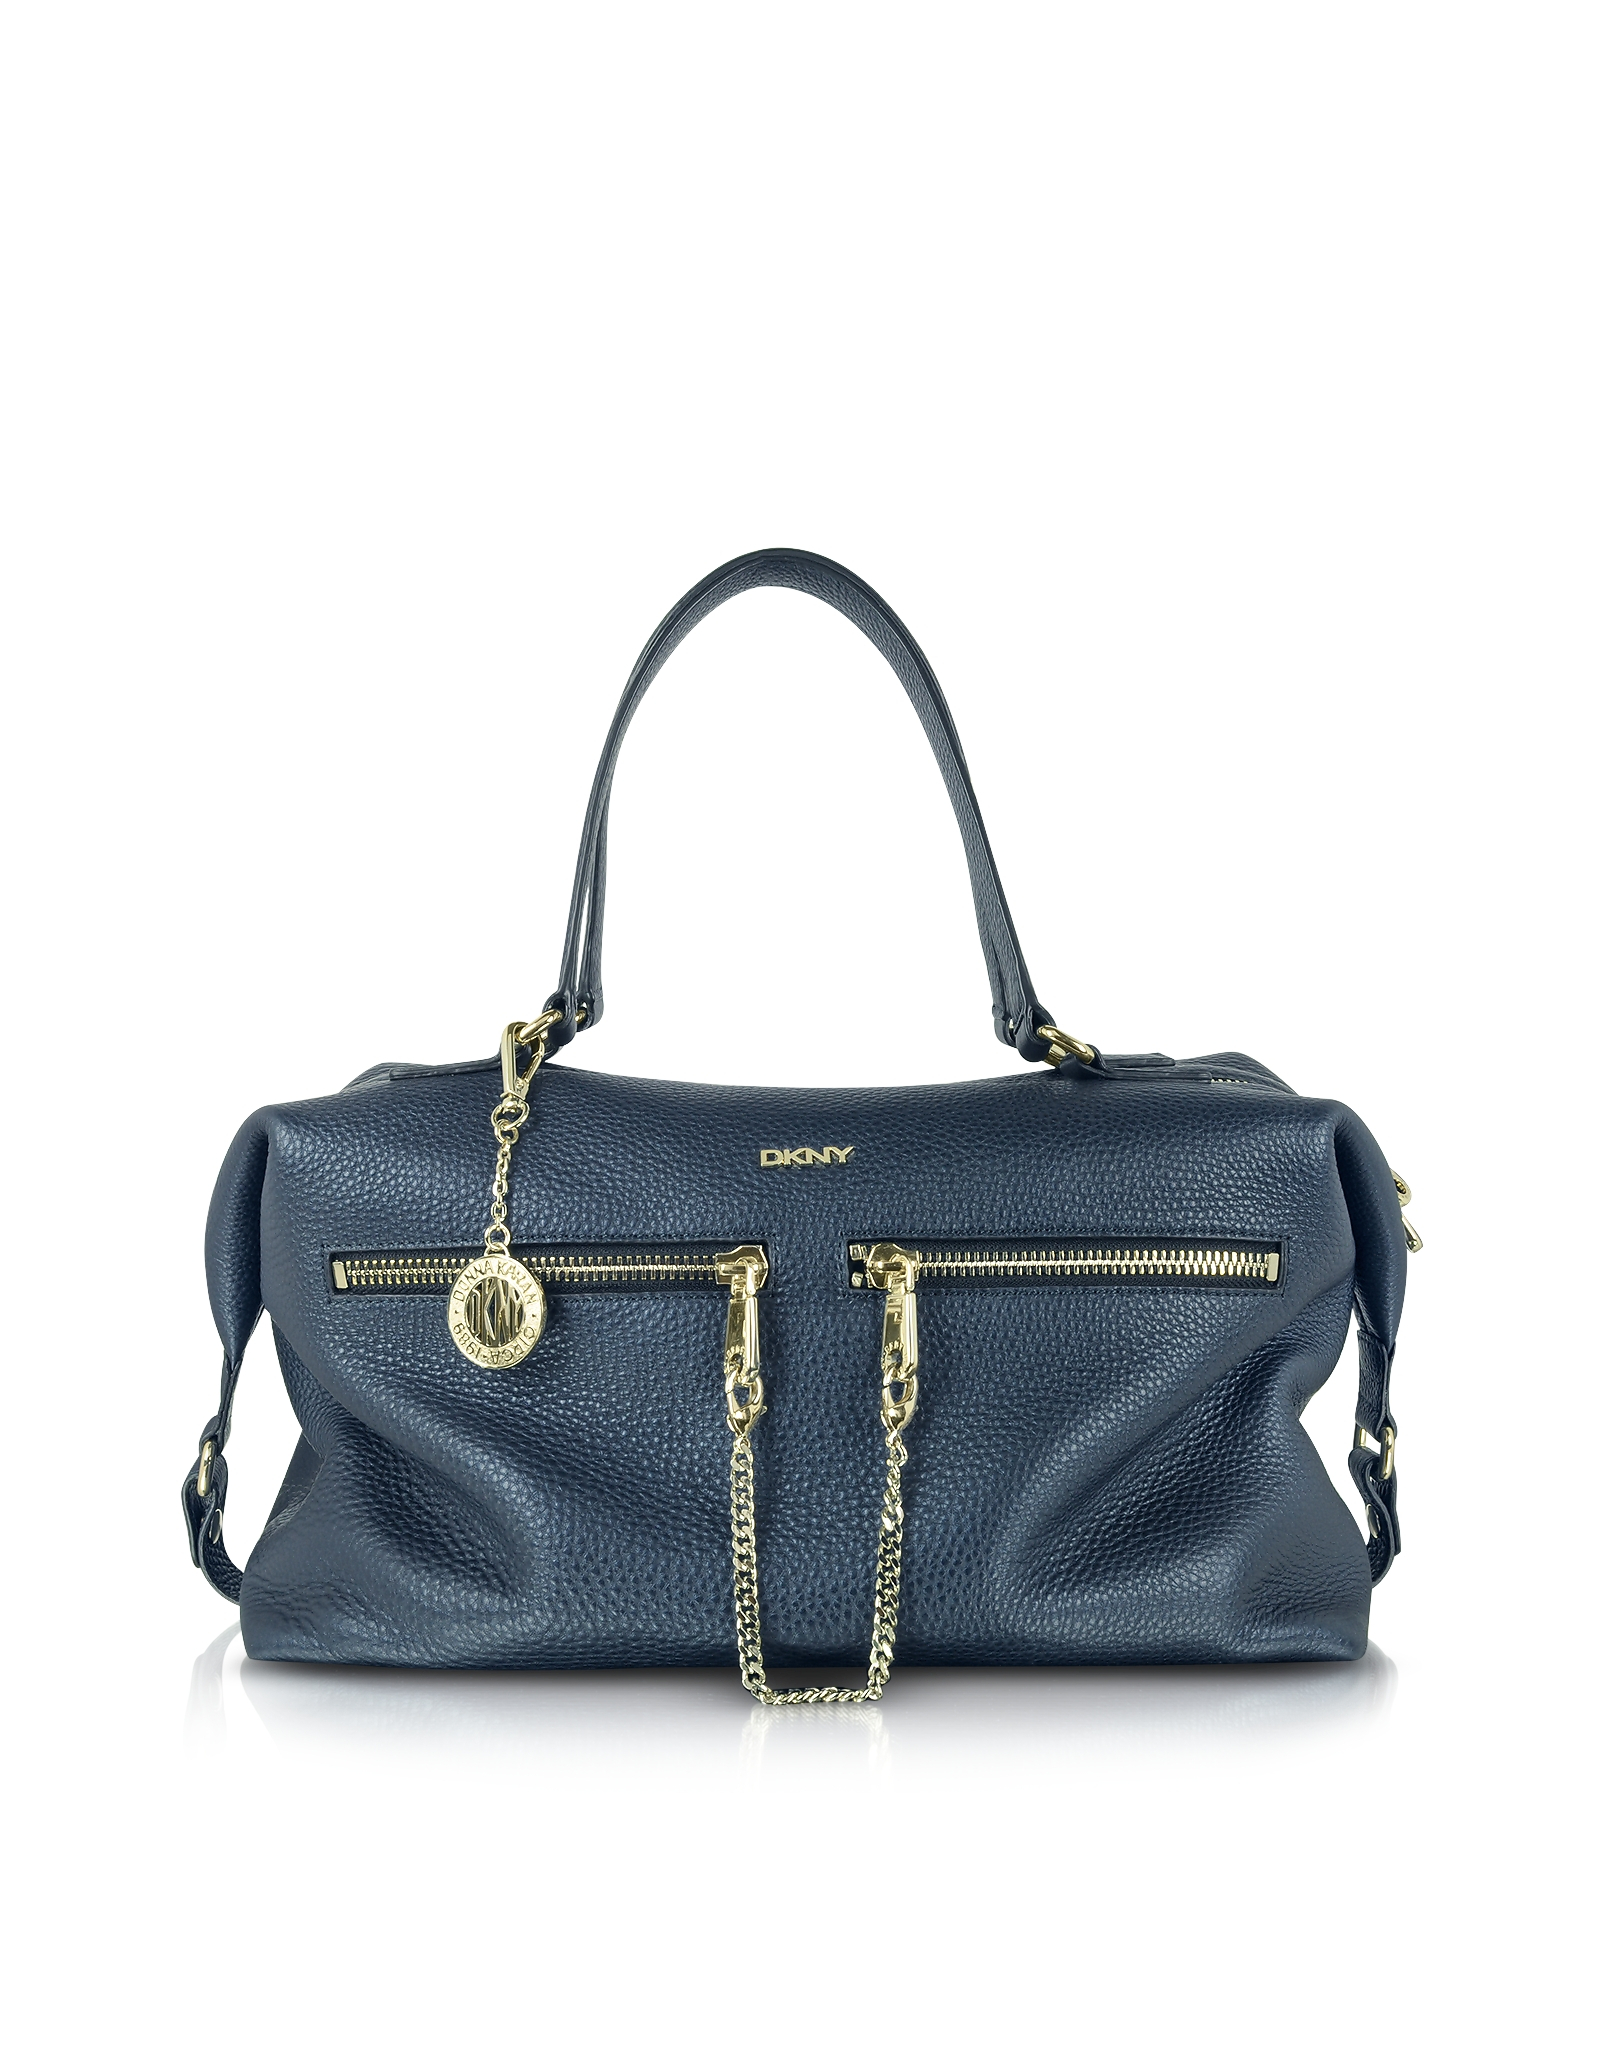 Get free shipping on Givenchy Horizon Medium Leather Satchel Bag, Navy at Neiman Marcus. Shop the latest luxury fashions from top designers.